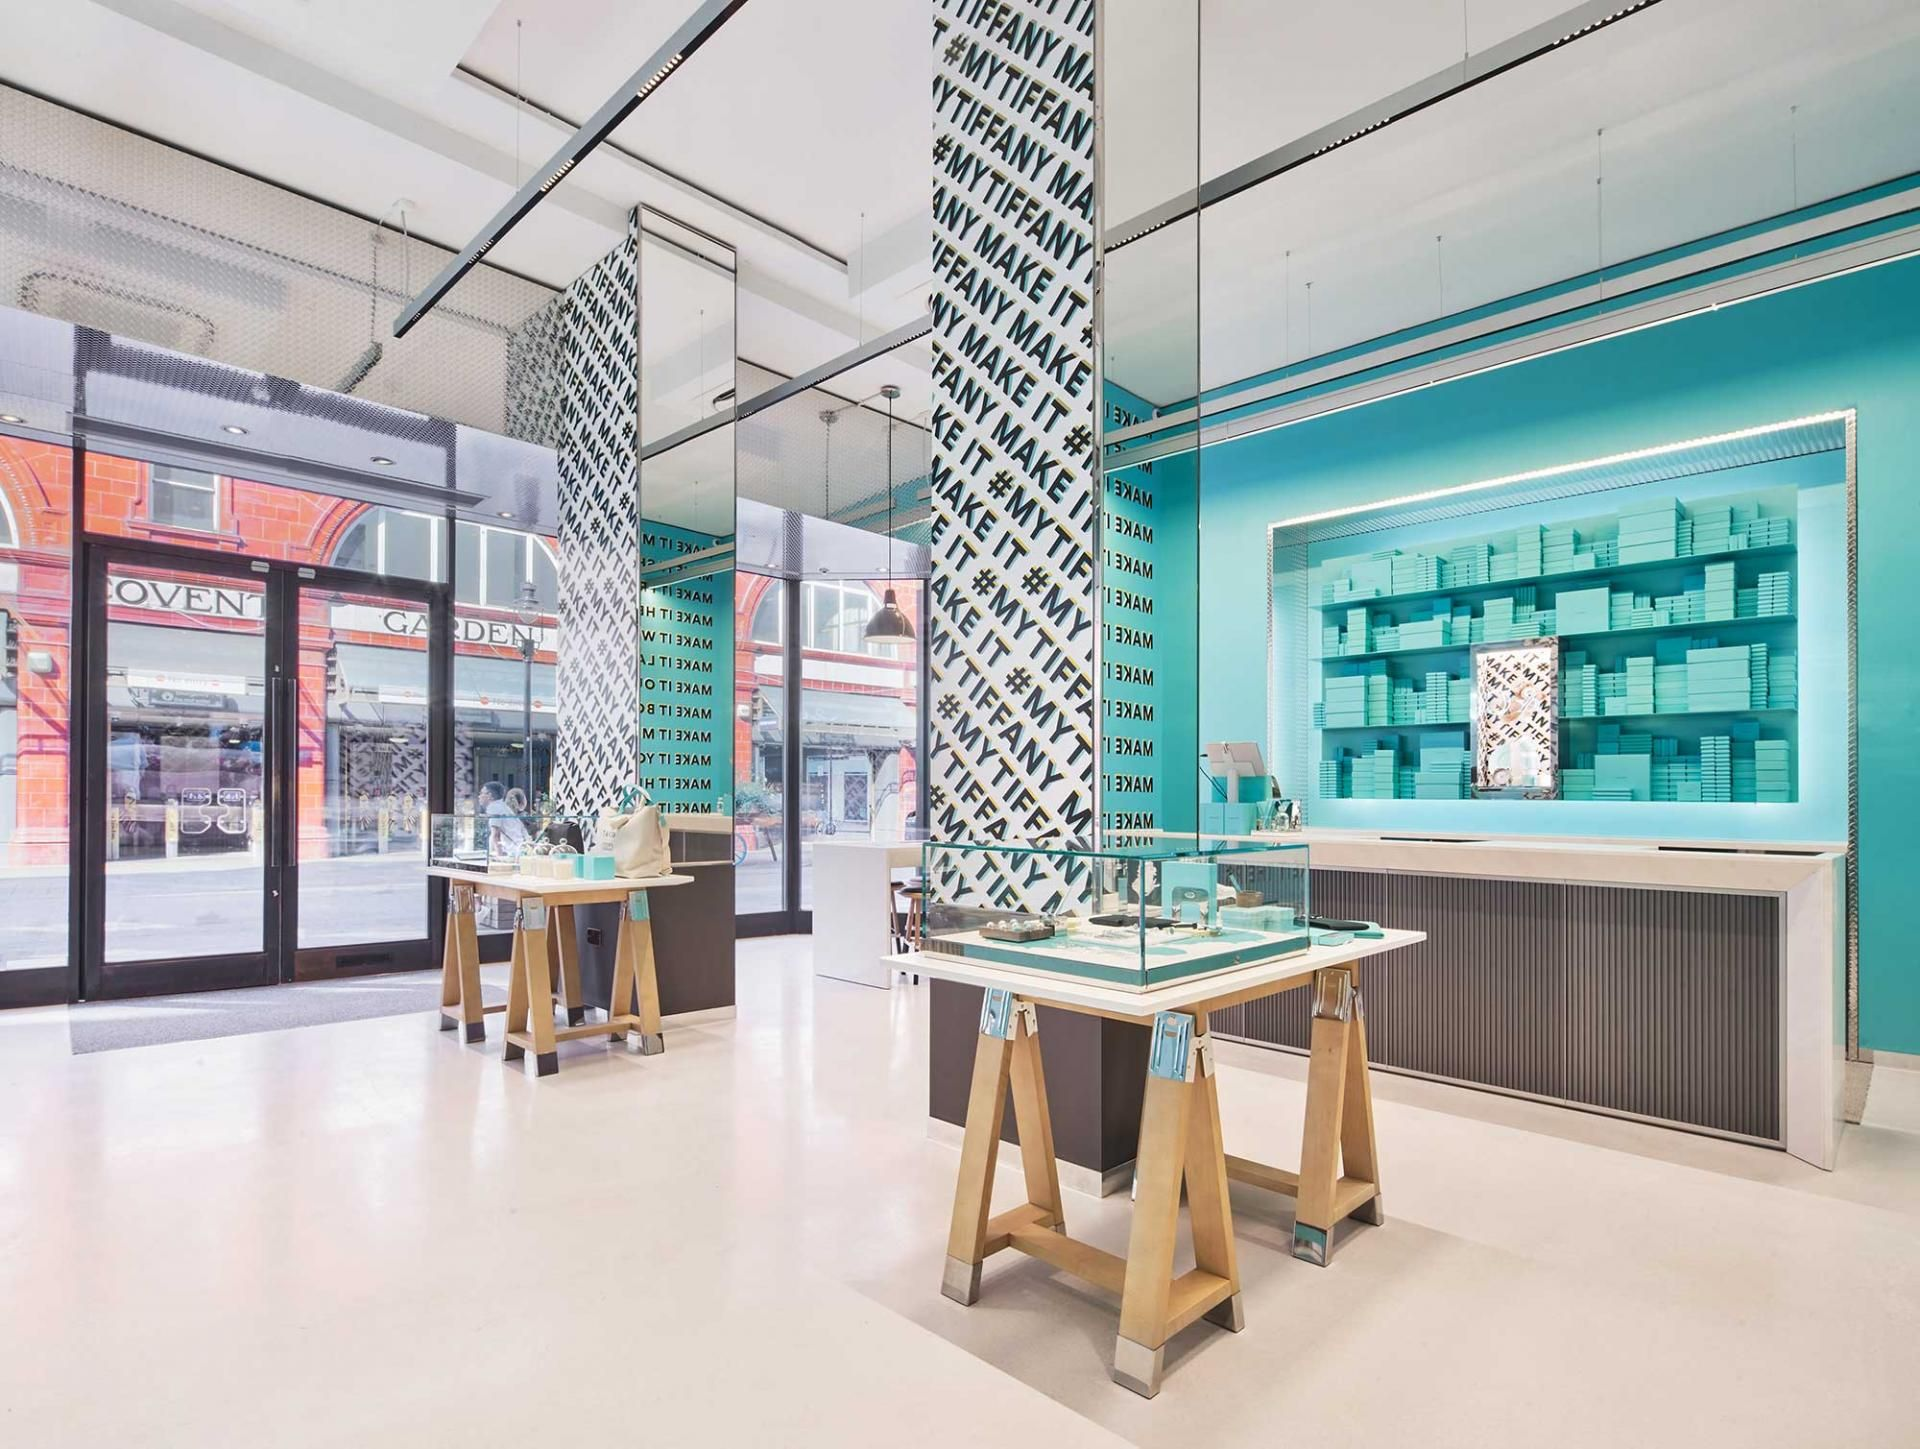 9527b9d45 Tiffany & Co. Style Studio, Covent Garden: try the new Tiffany vending  machine | Jewellery | Watches & Jewellery | Luxury London